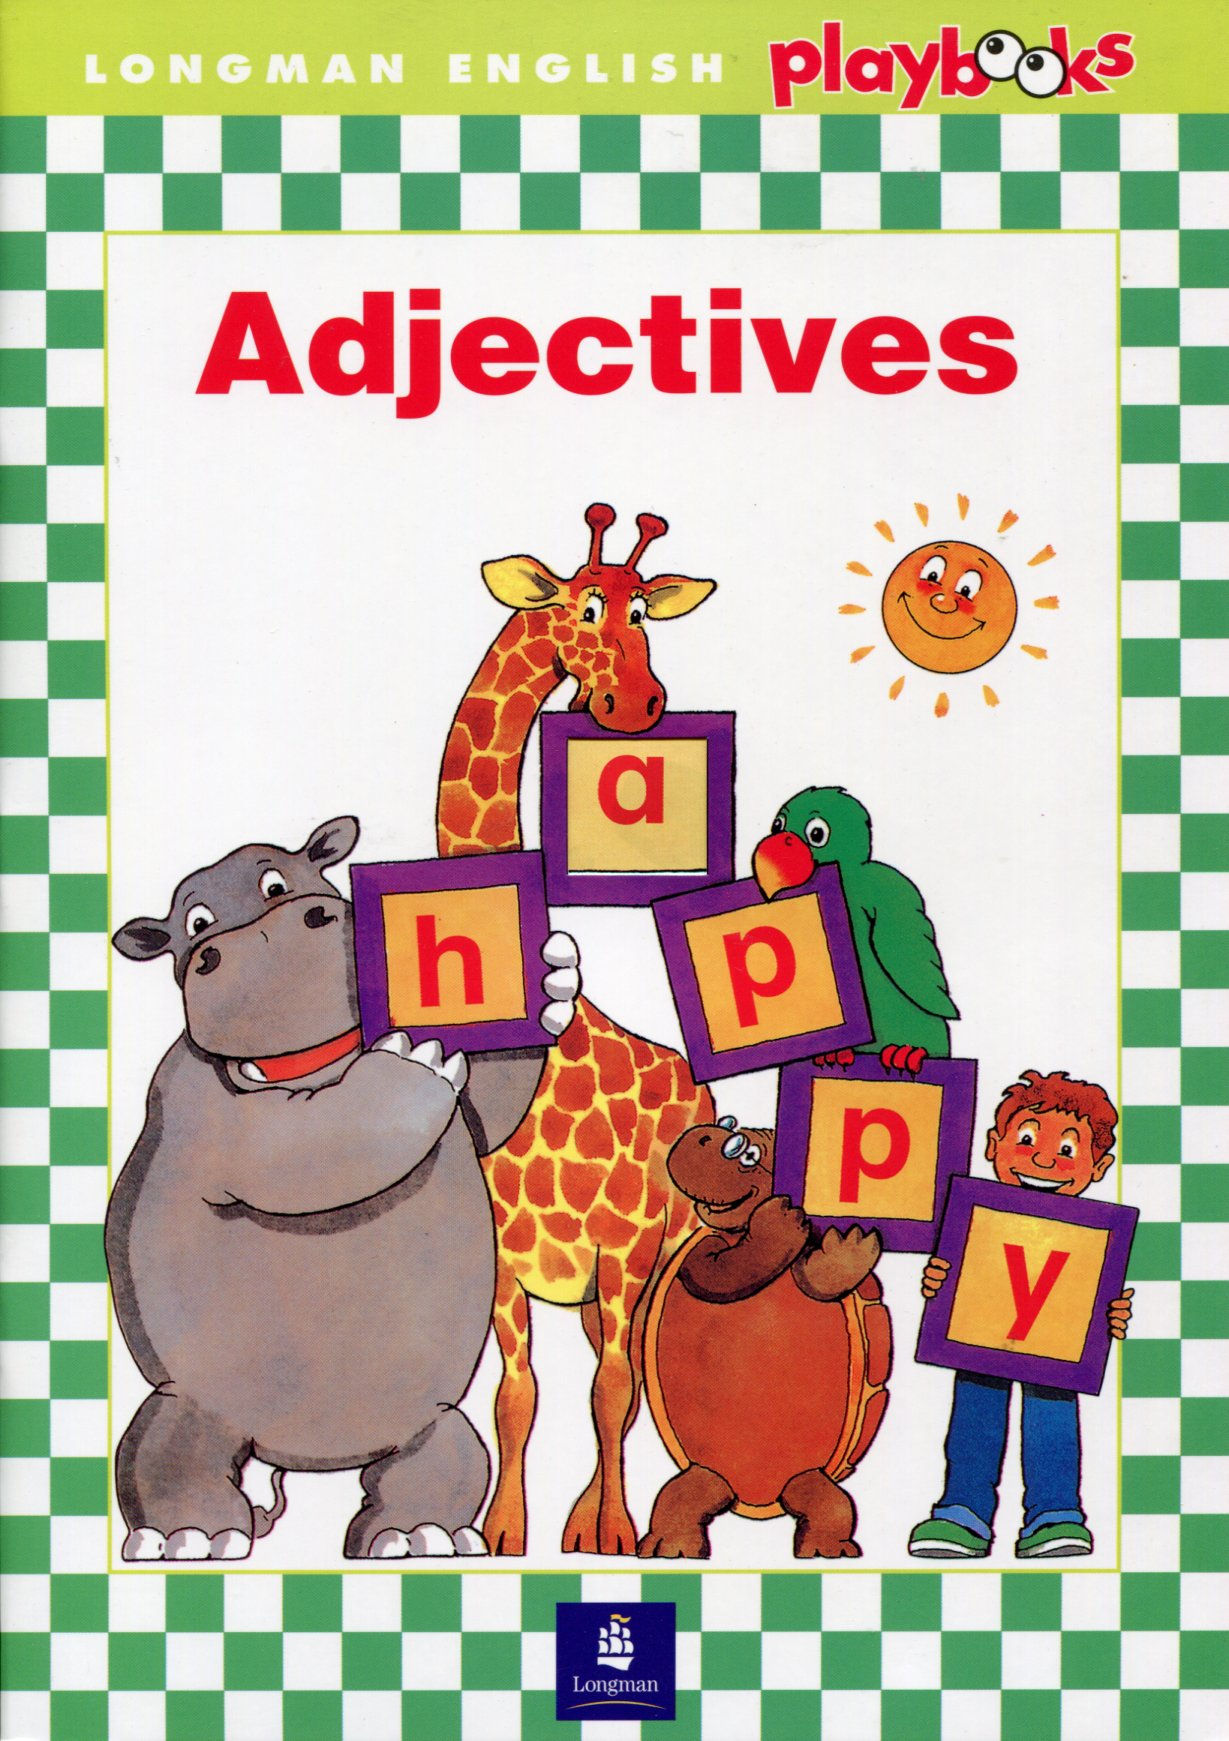 Longman English Playbooks: Adjectives